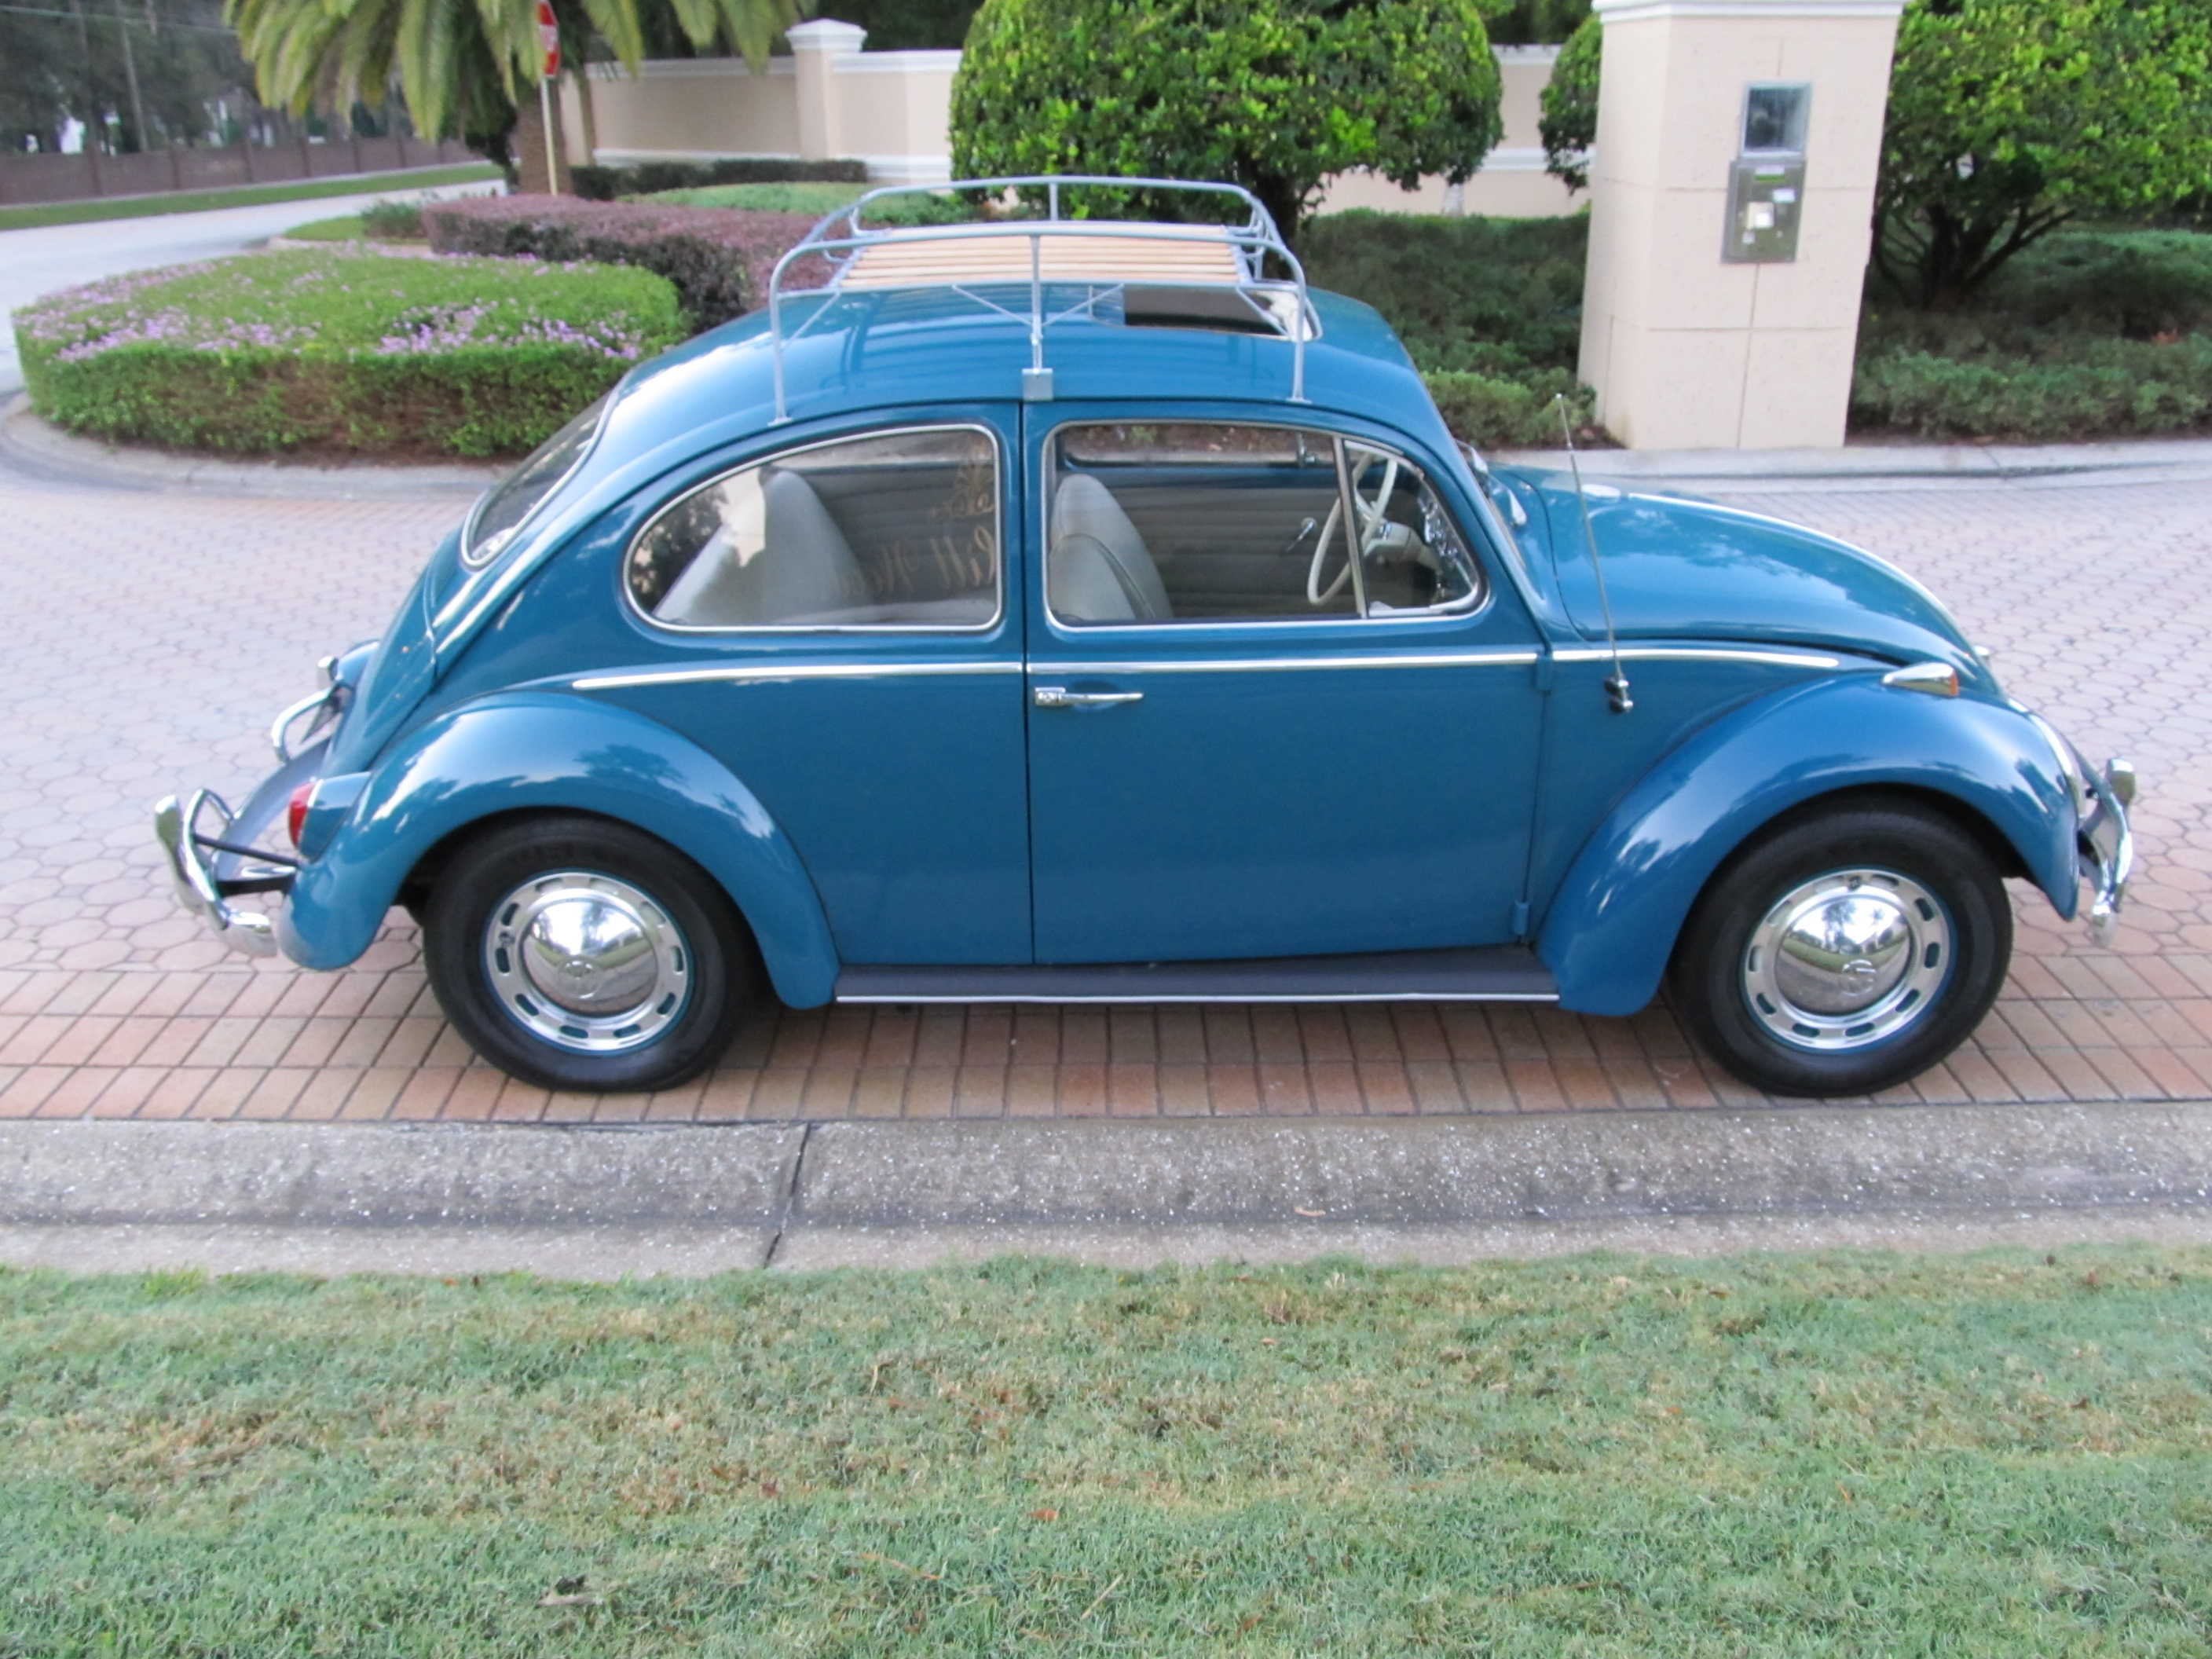 1965 Volkswagen Beetle — A nicely, restored sunroof Bug finished